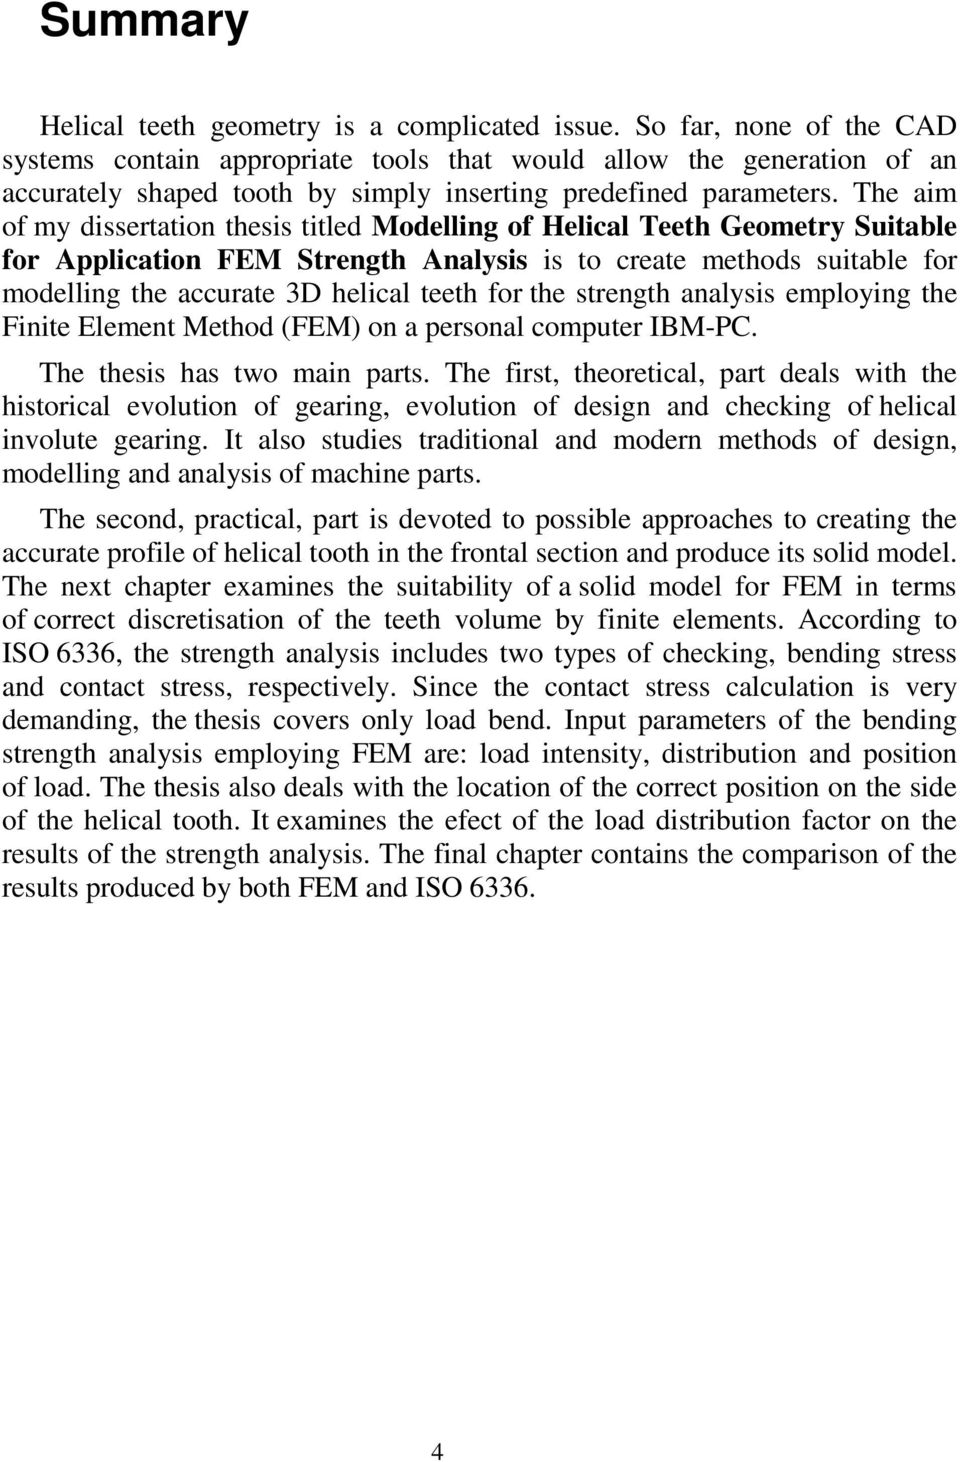 The aim of my dissertation thesis titled Modelling of Helical Teeth Geometry Suitable for Application FEM Strength Analysis is to create methods suitable for modelling the accurate 3D helical teeth